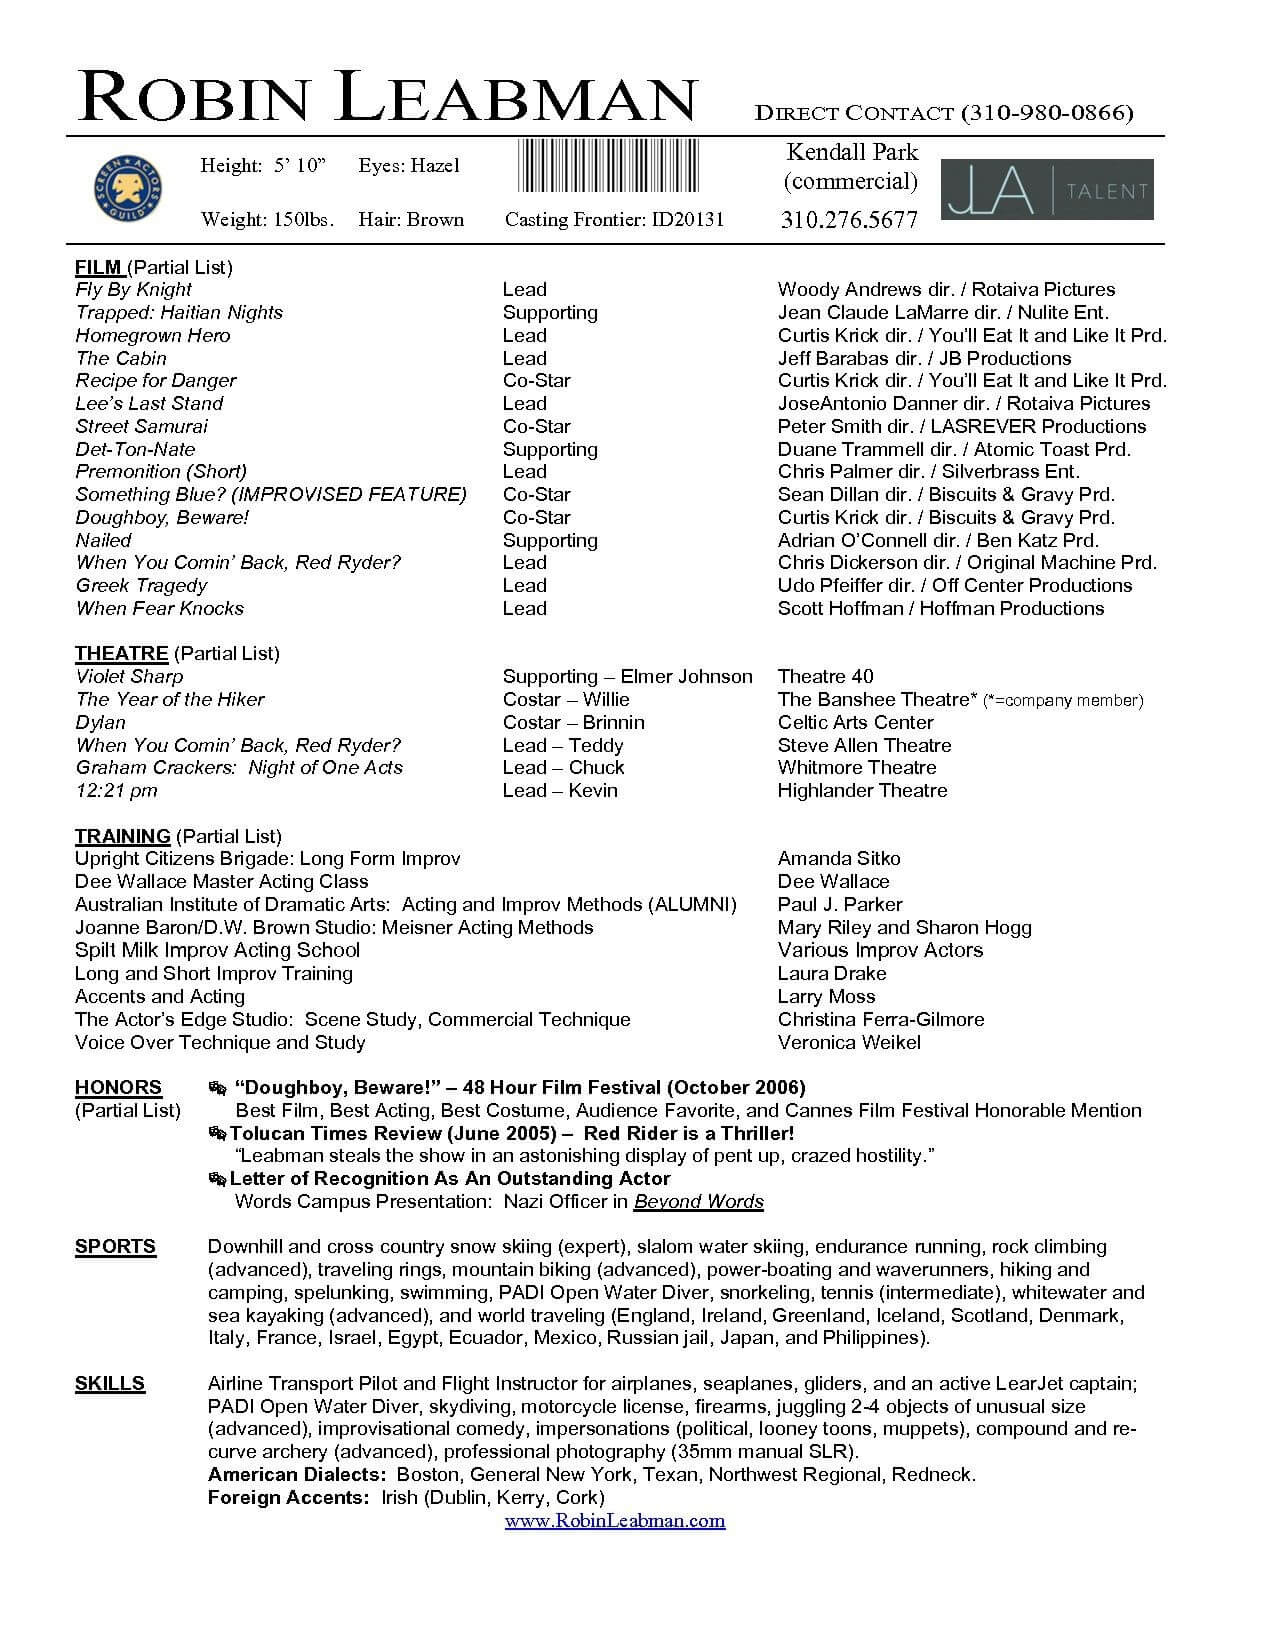 Lovely Acting Resume Template For Microsoft Word – Superkepo Pertaining To Theatrical Resume Template Word